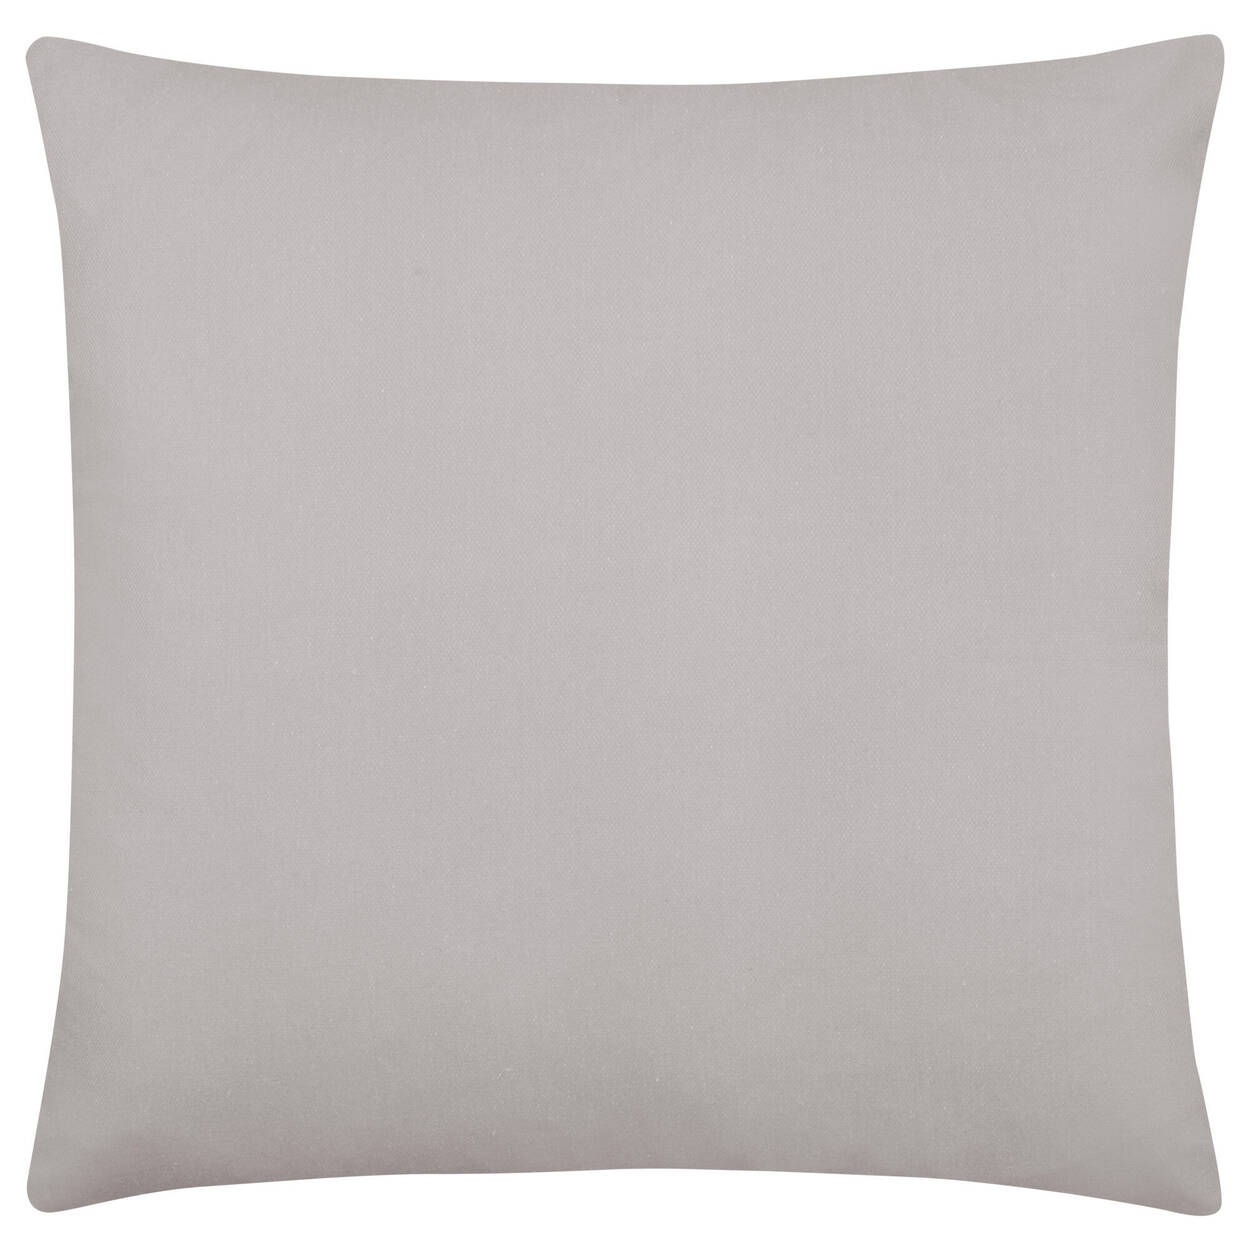 "Lacey Decorative Pillow 18"" x 18"""